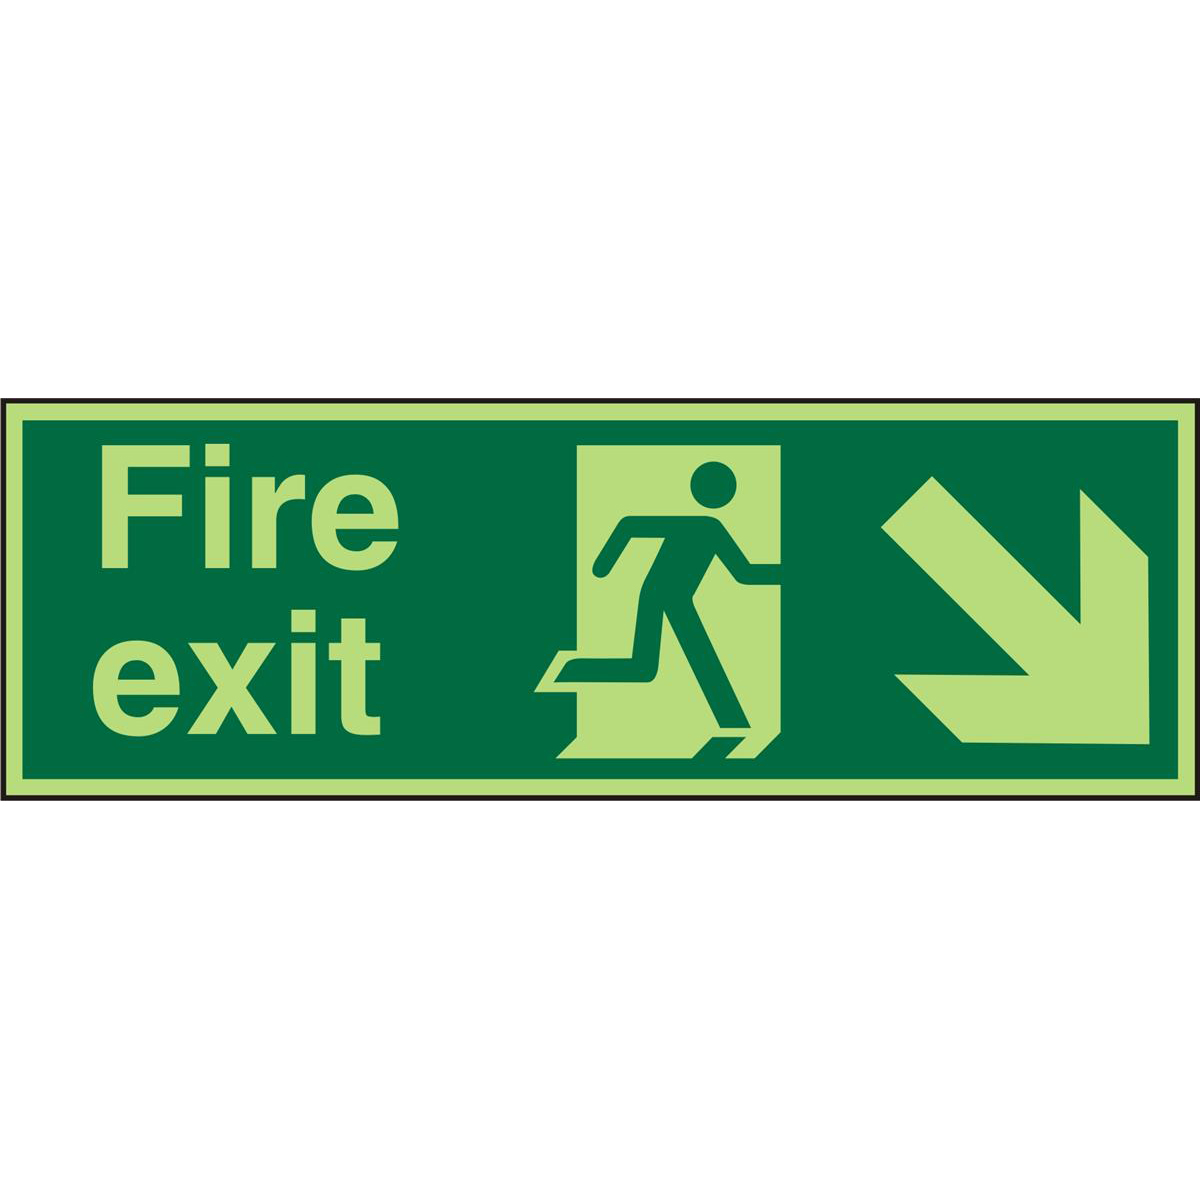 PhotolumSign 600x200 S/A FireExit Man Running Right&Arrow Ref PSP123SAV600x200 *Up to 10 Day Leadtime*